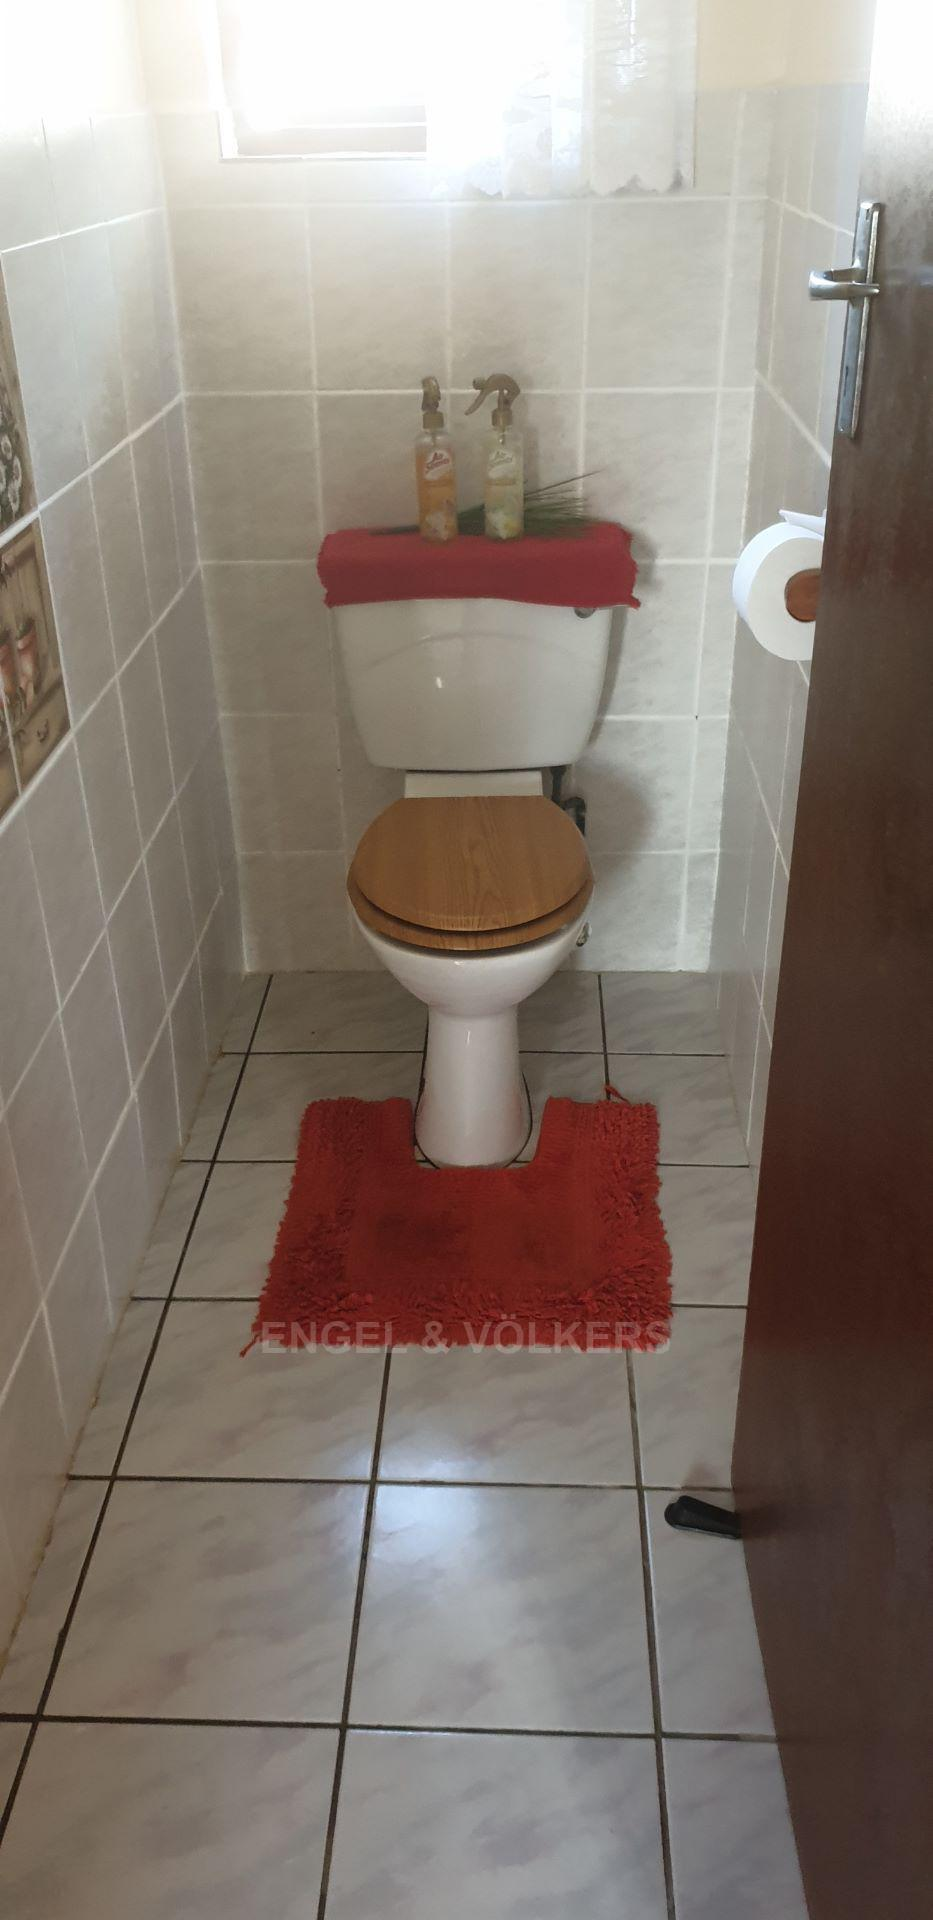 House in Uvongo - 010 - Guest toilet.jpg